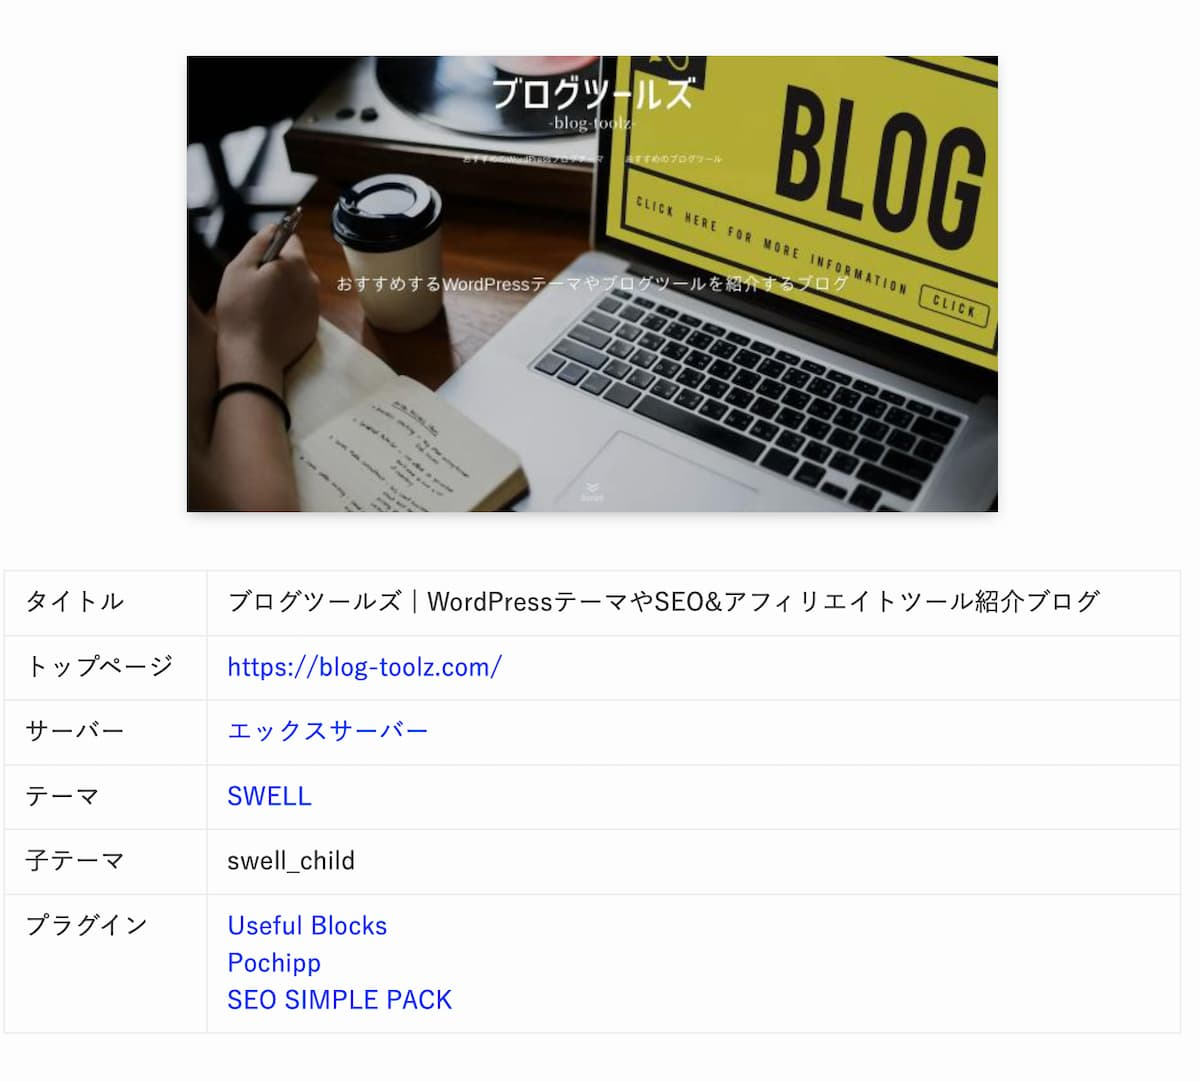 WP-Searchの検索結果